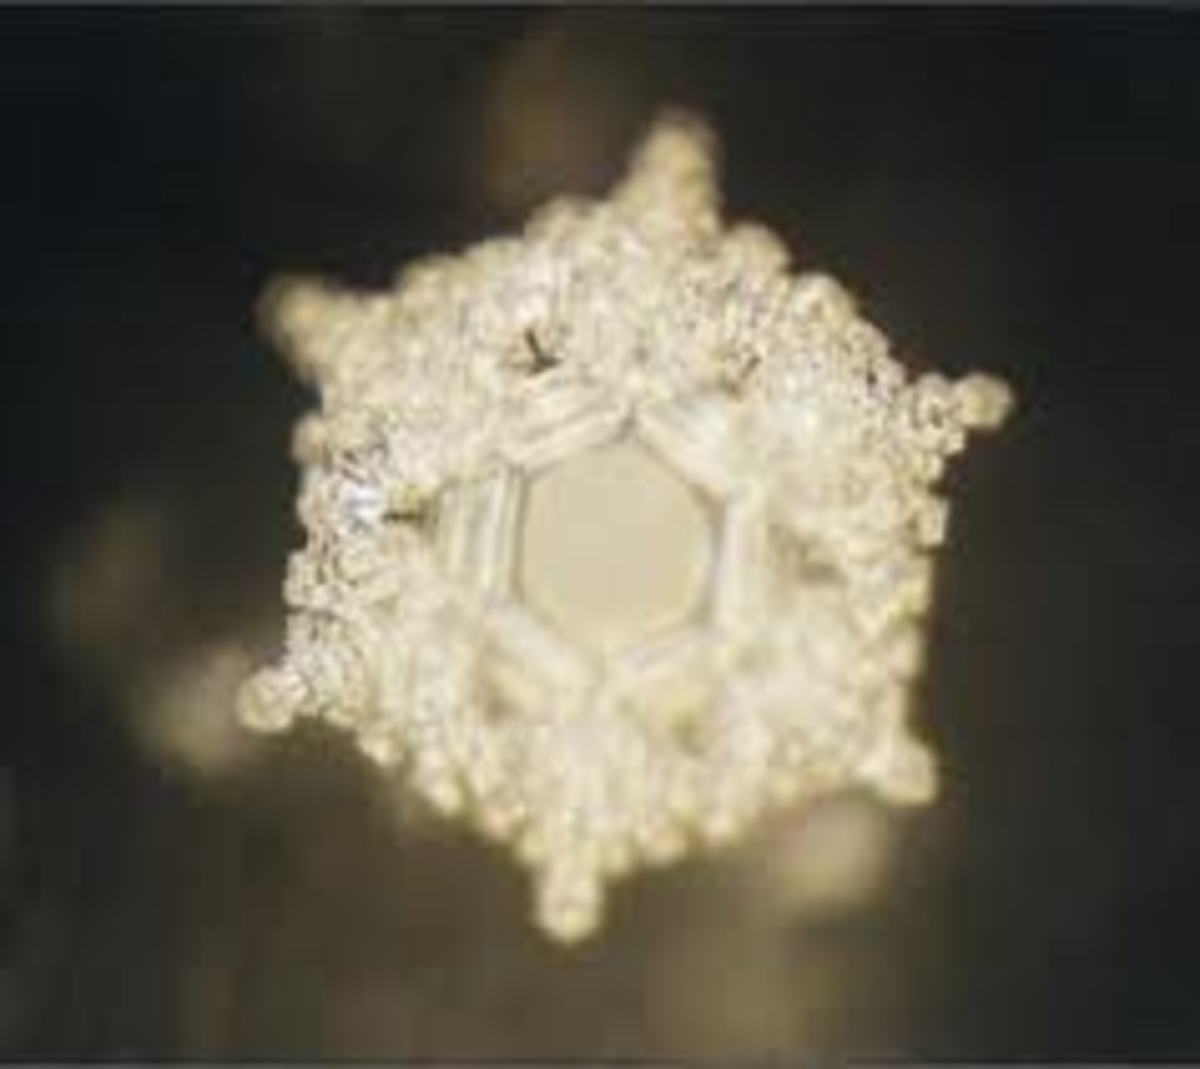 Thoughts of Love and Gratitude radiated at water results in the most beautiful and complex of all water crystals.